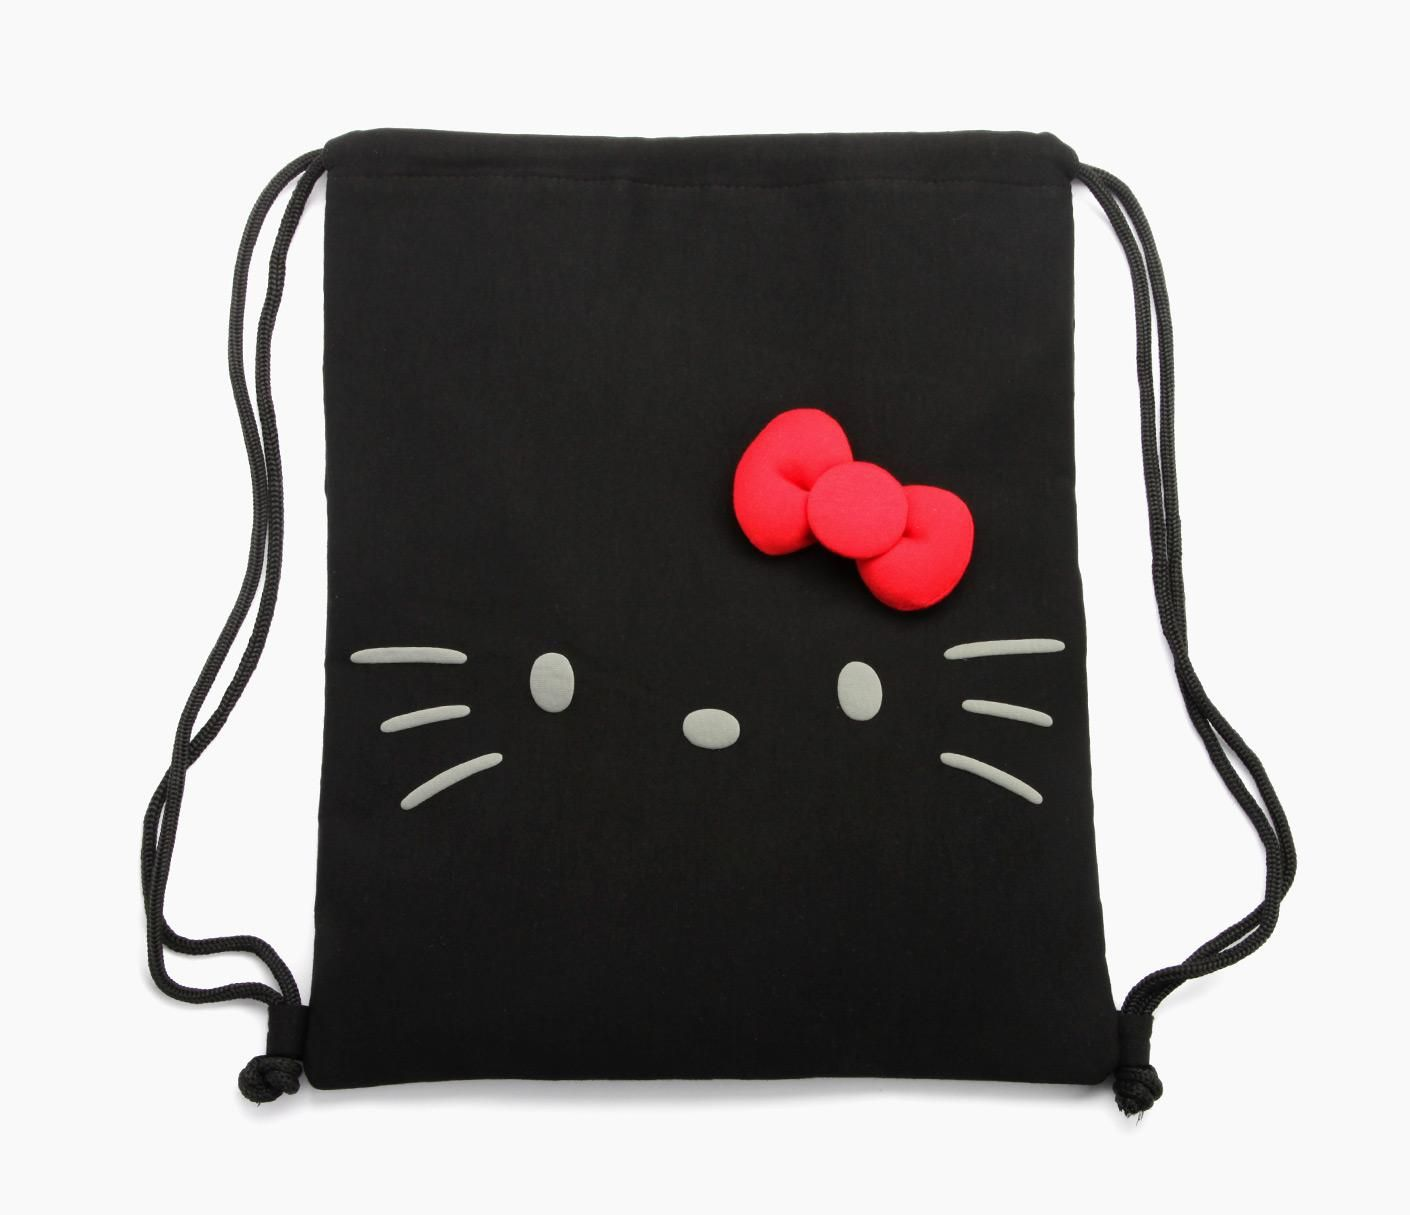 62a48138e0 Hello Kitty drawstring bag  we could all use one